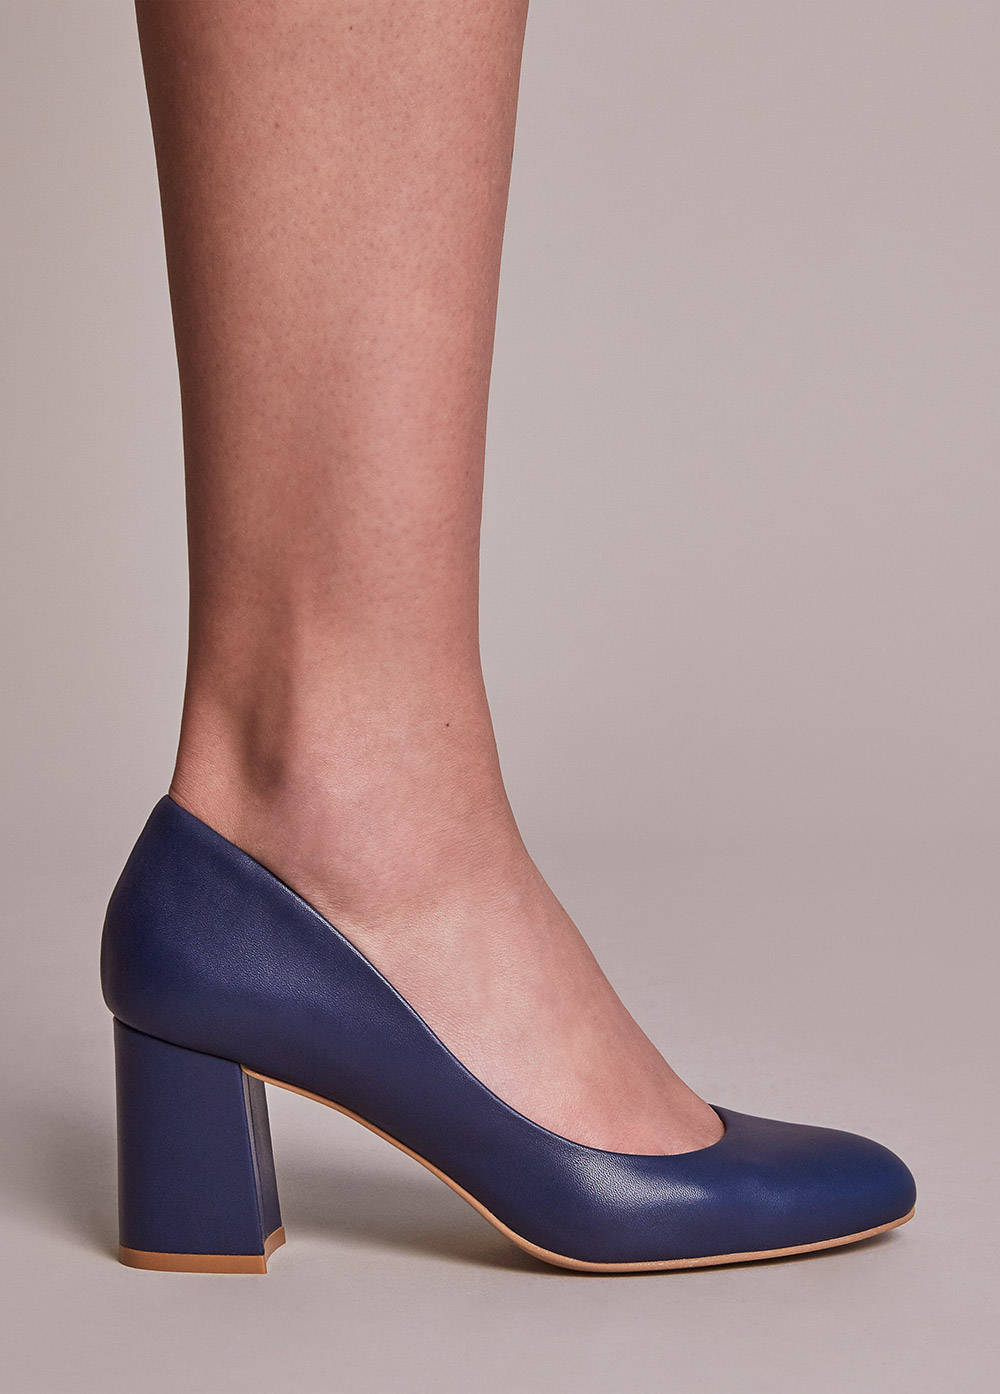 How to find your ideal heel height shoes of prey navy leather 3 inch heels altavistaventures Image collections